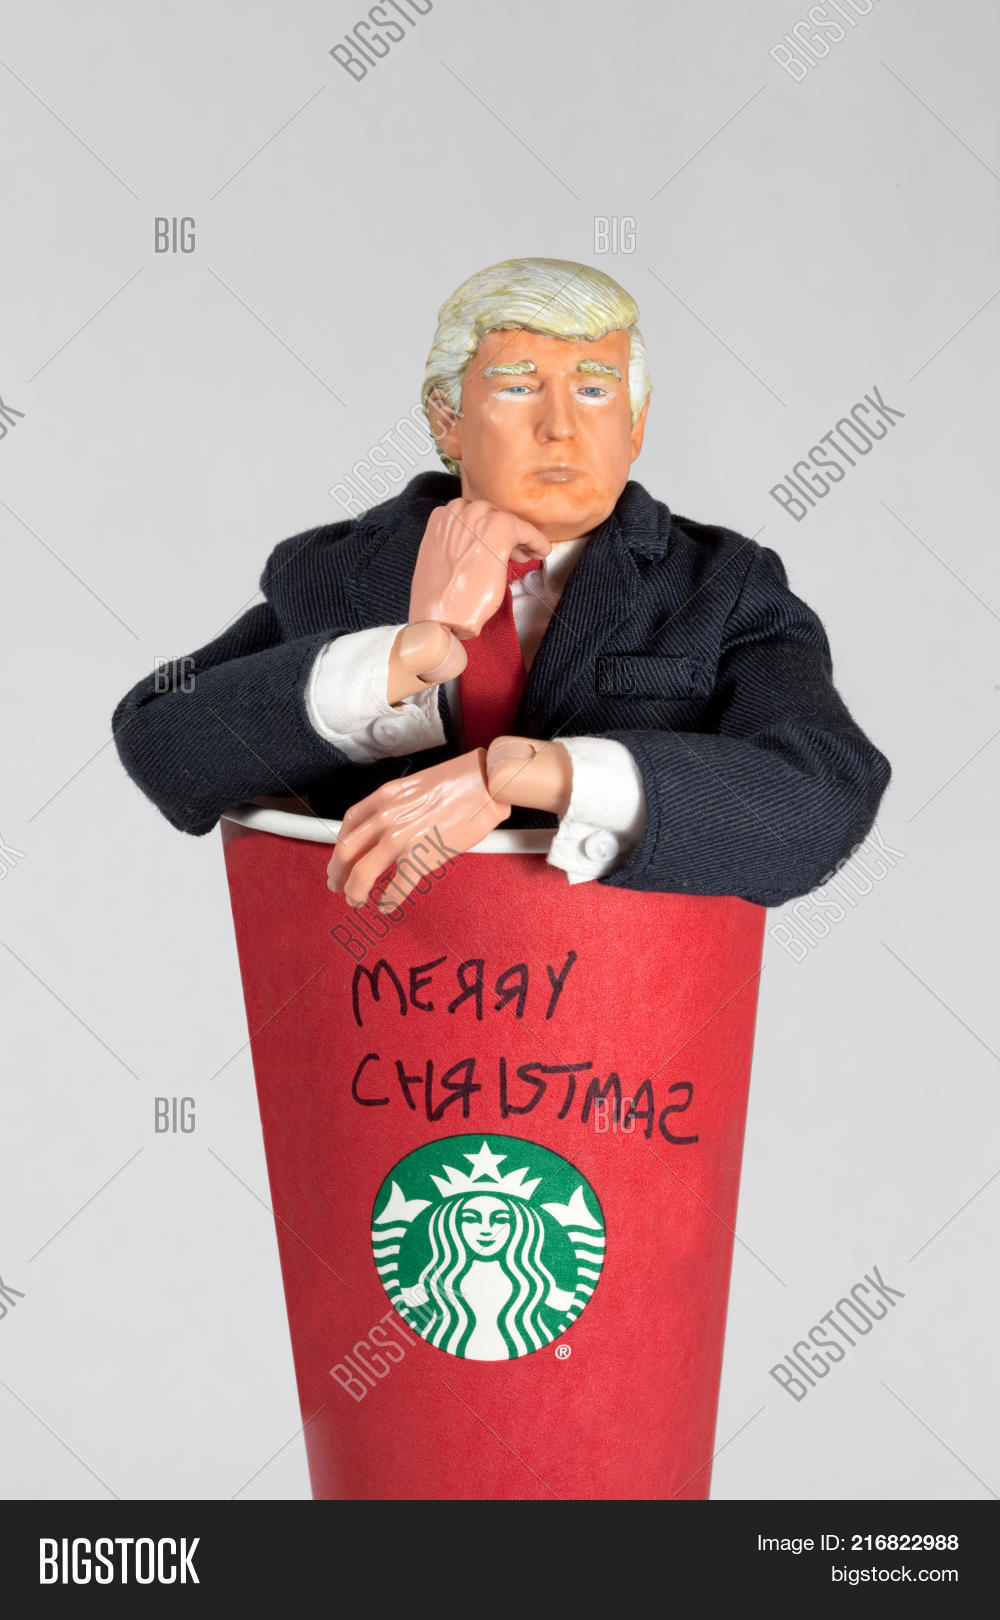 donald trump caricature action figure coming out of a starbucks coffee cup with merry christmas written - Starbucks Merry Christmas